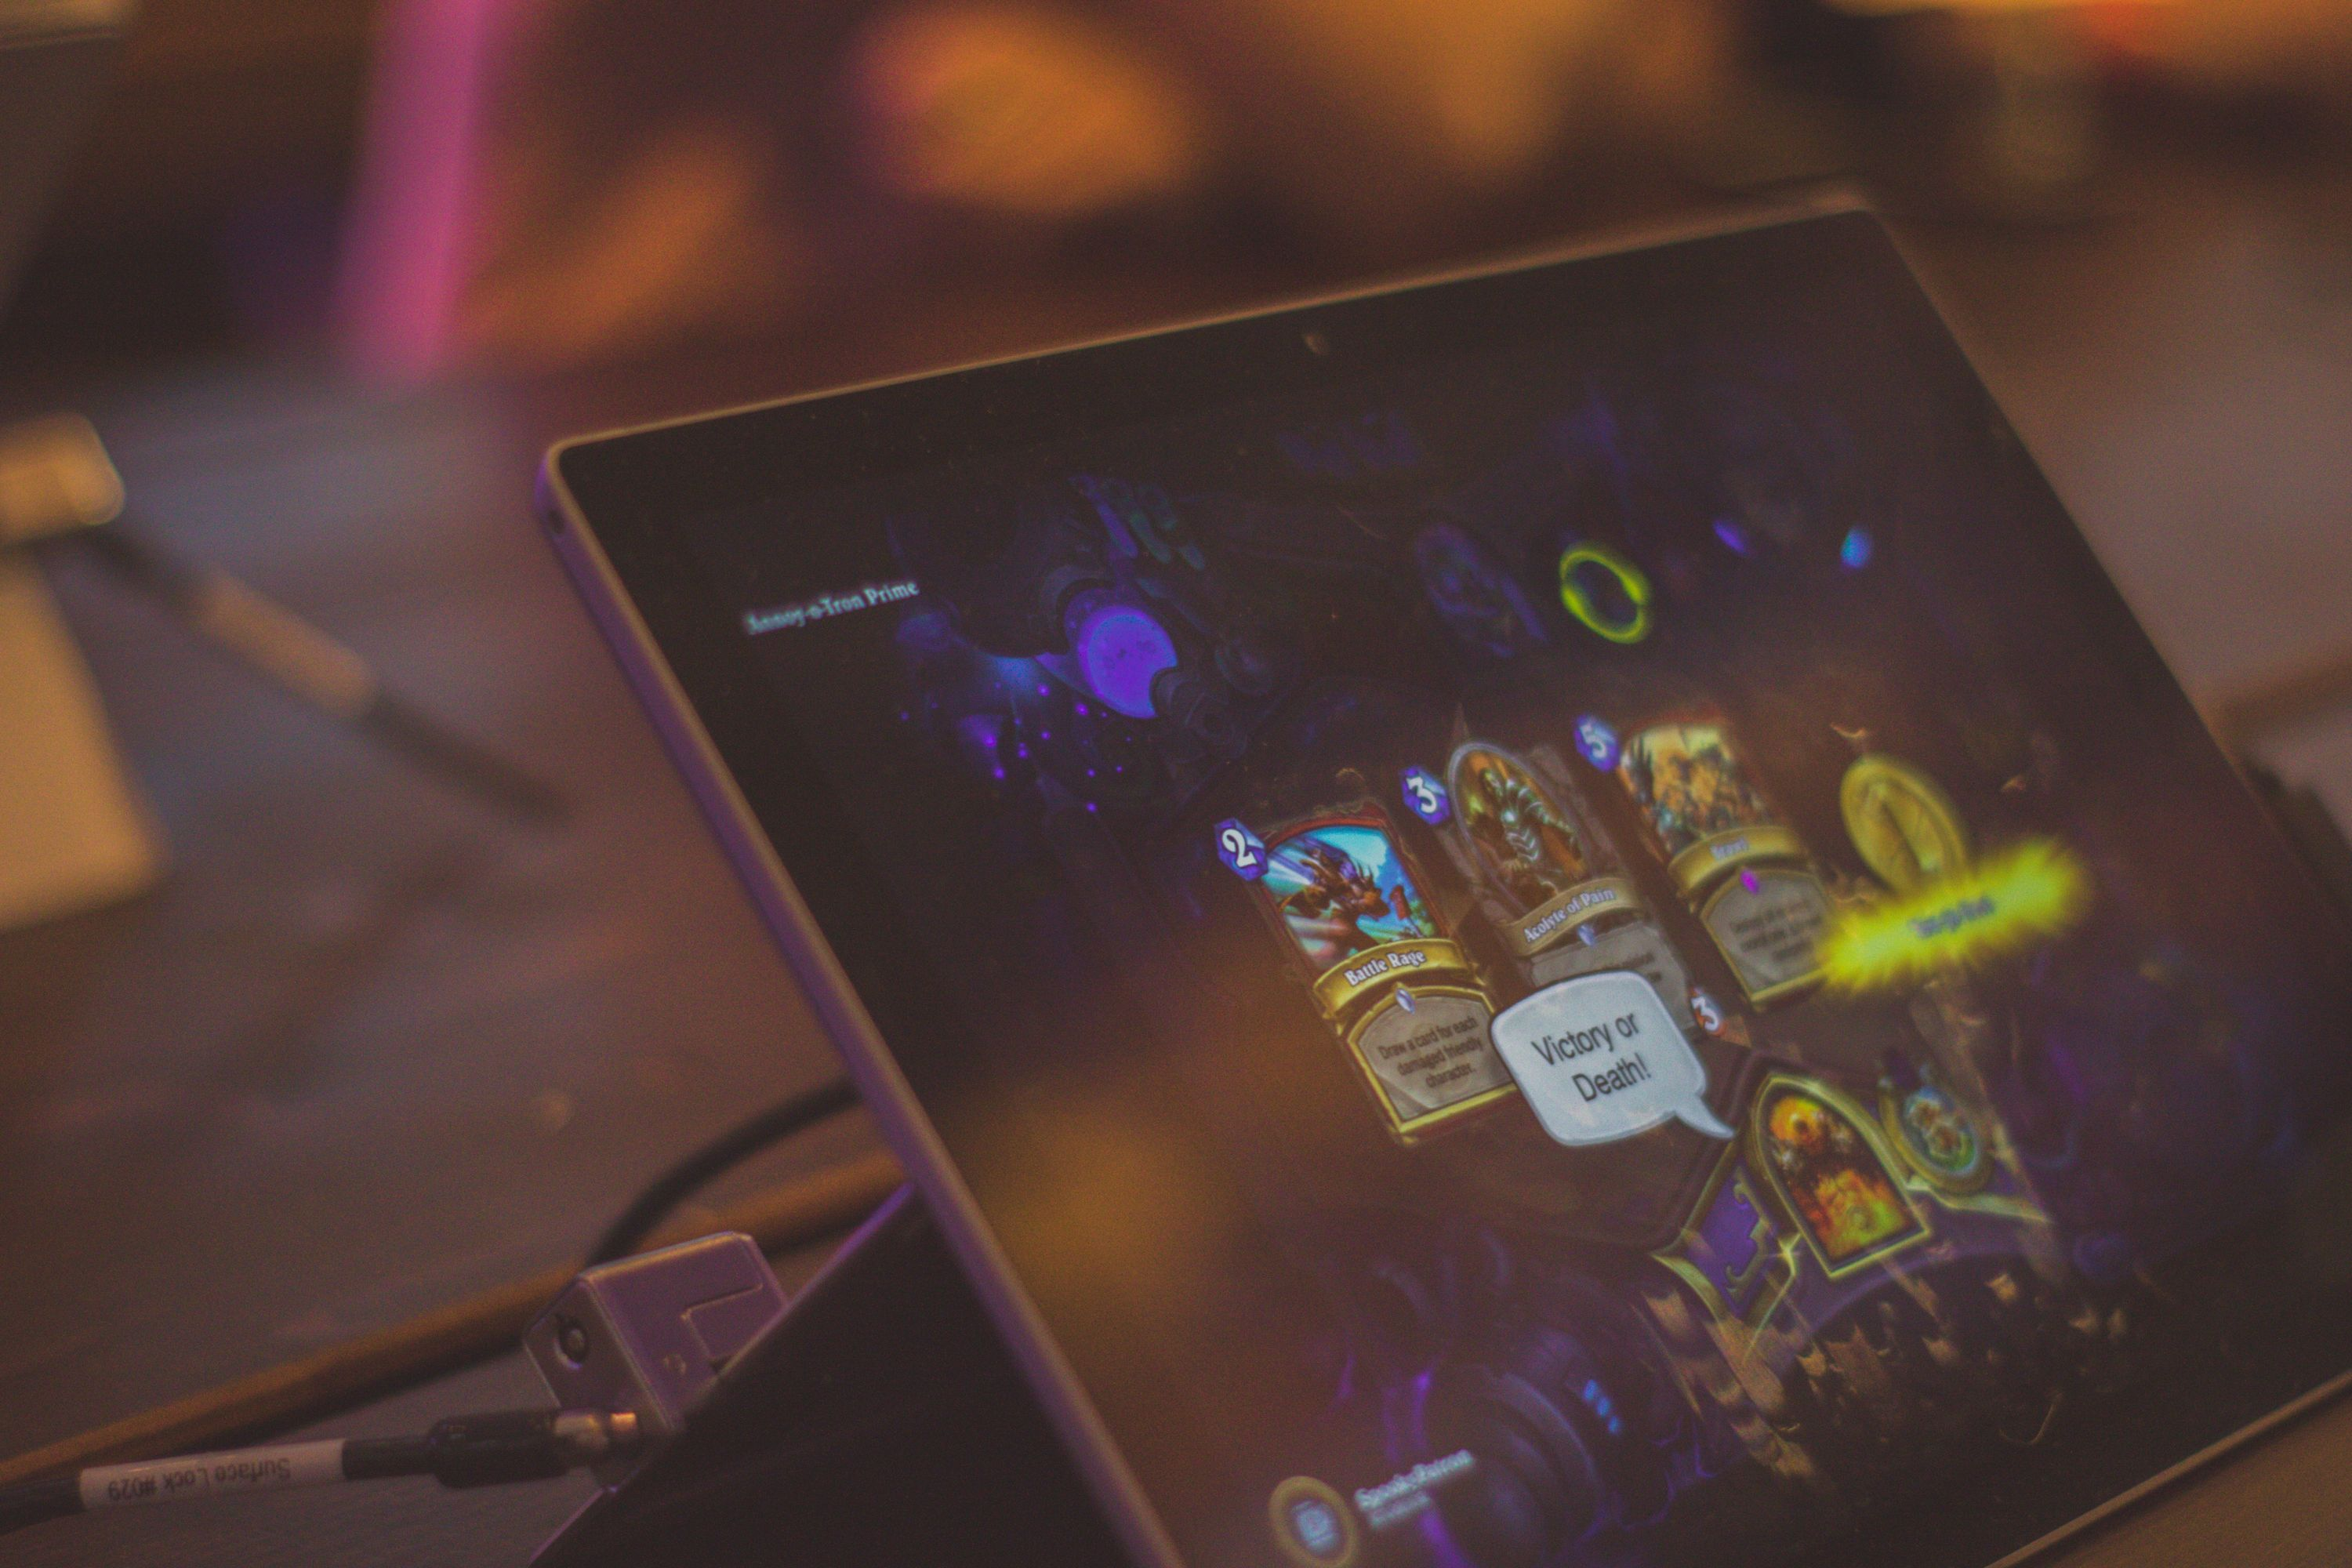 Blizzard's Hearthstone being played on a tablet